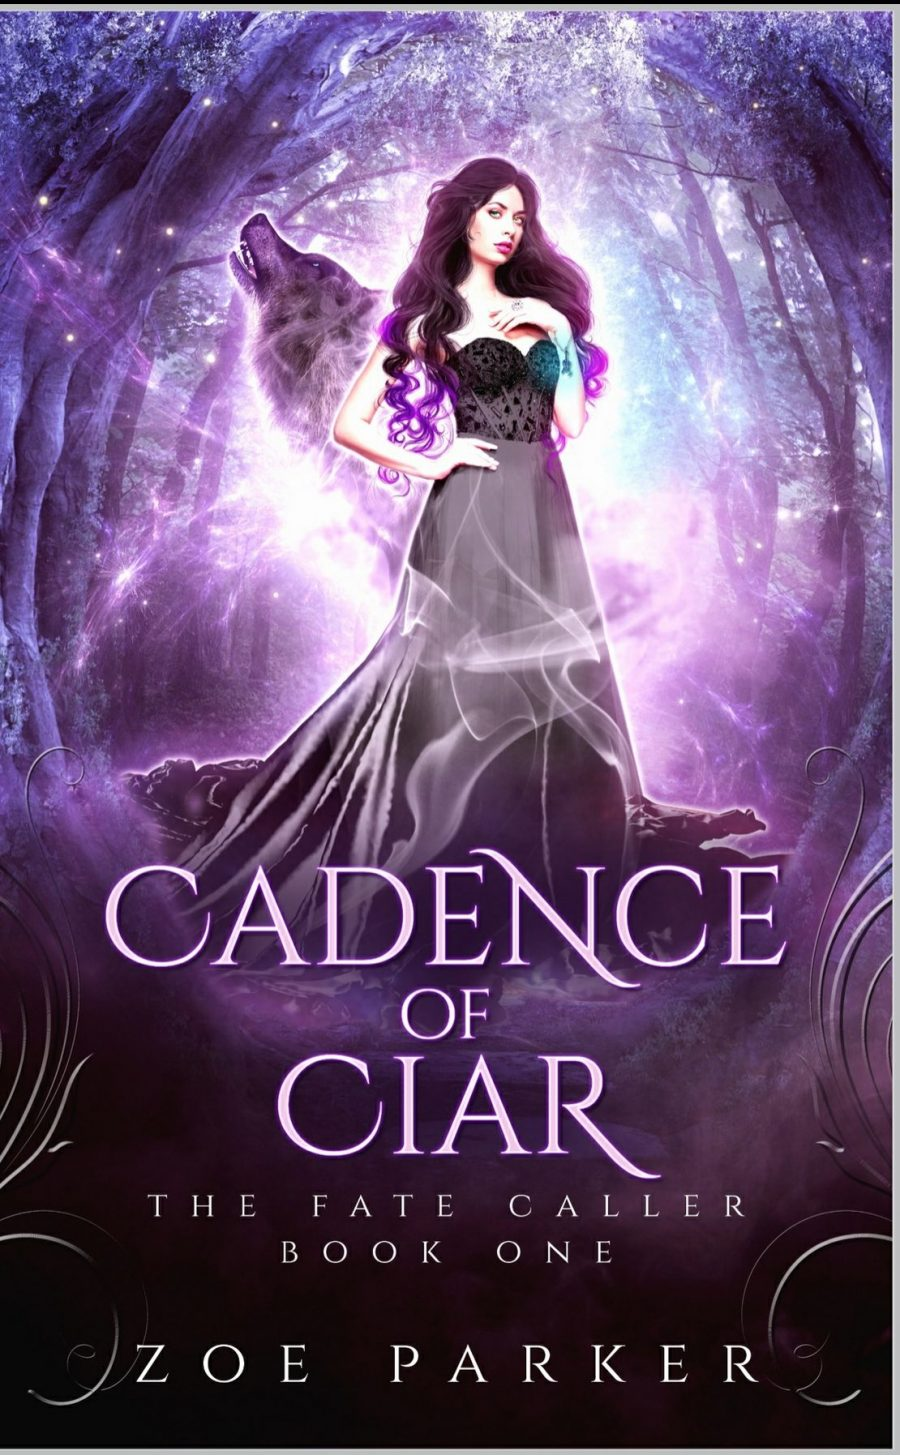 Cadence of Ciar *The Fate Caller - Book 1* by Zoe Parker - A Book Review #BookReview #Fantasy #RH #WhyChoose #ReverseHarem #SlowBurn #5Star